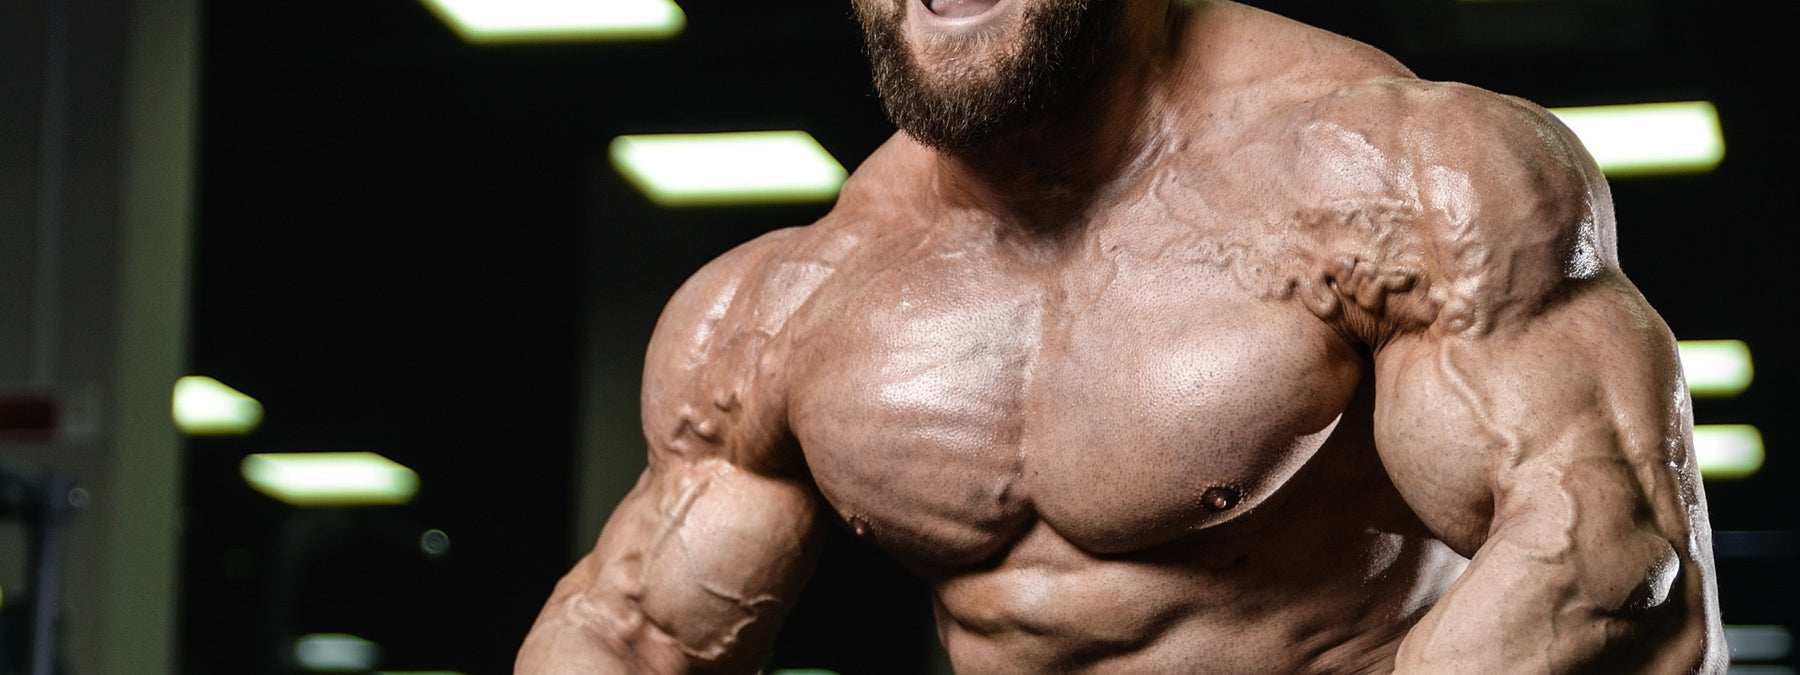 6 Habits of Successful Bodybuilders You Need to Take Seriously